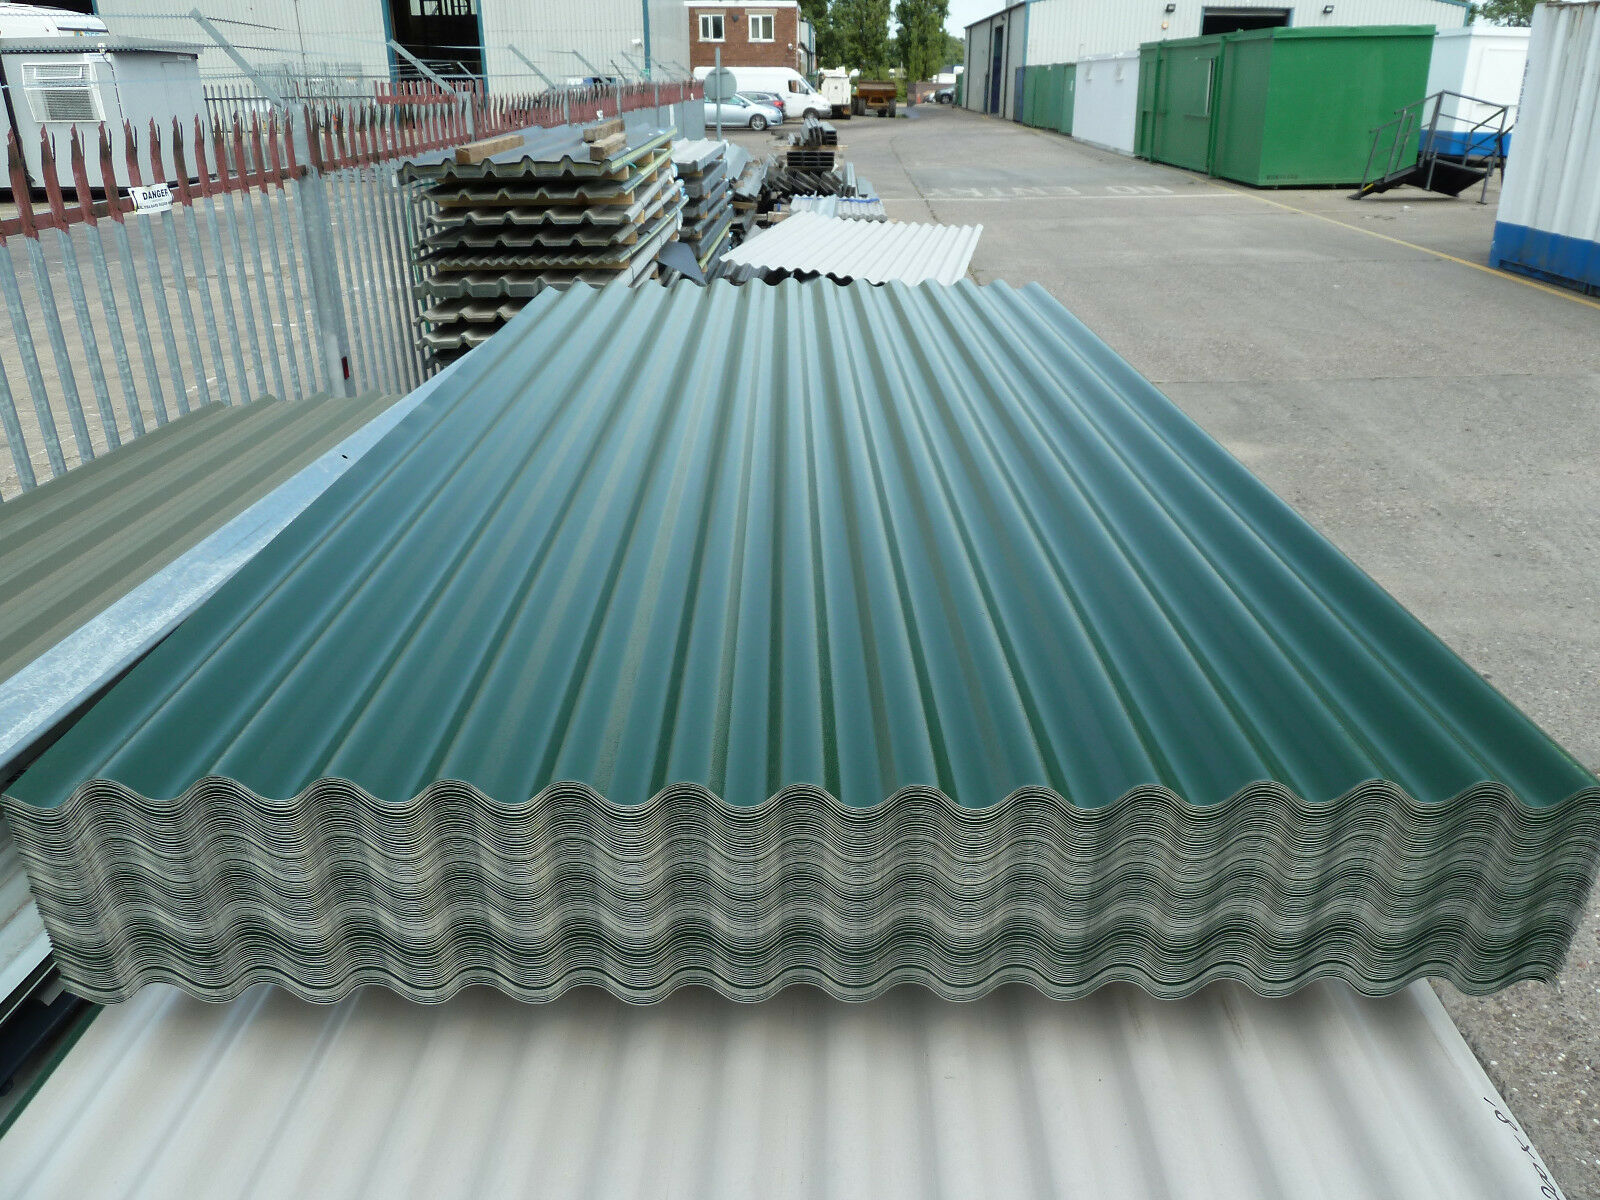 Corrugated Roofing Sheets Juniper Green Pvc Coated Steel